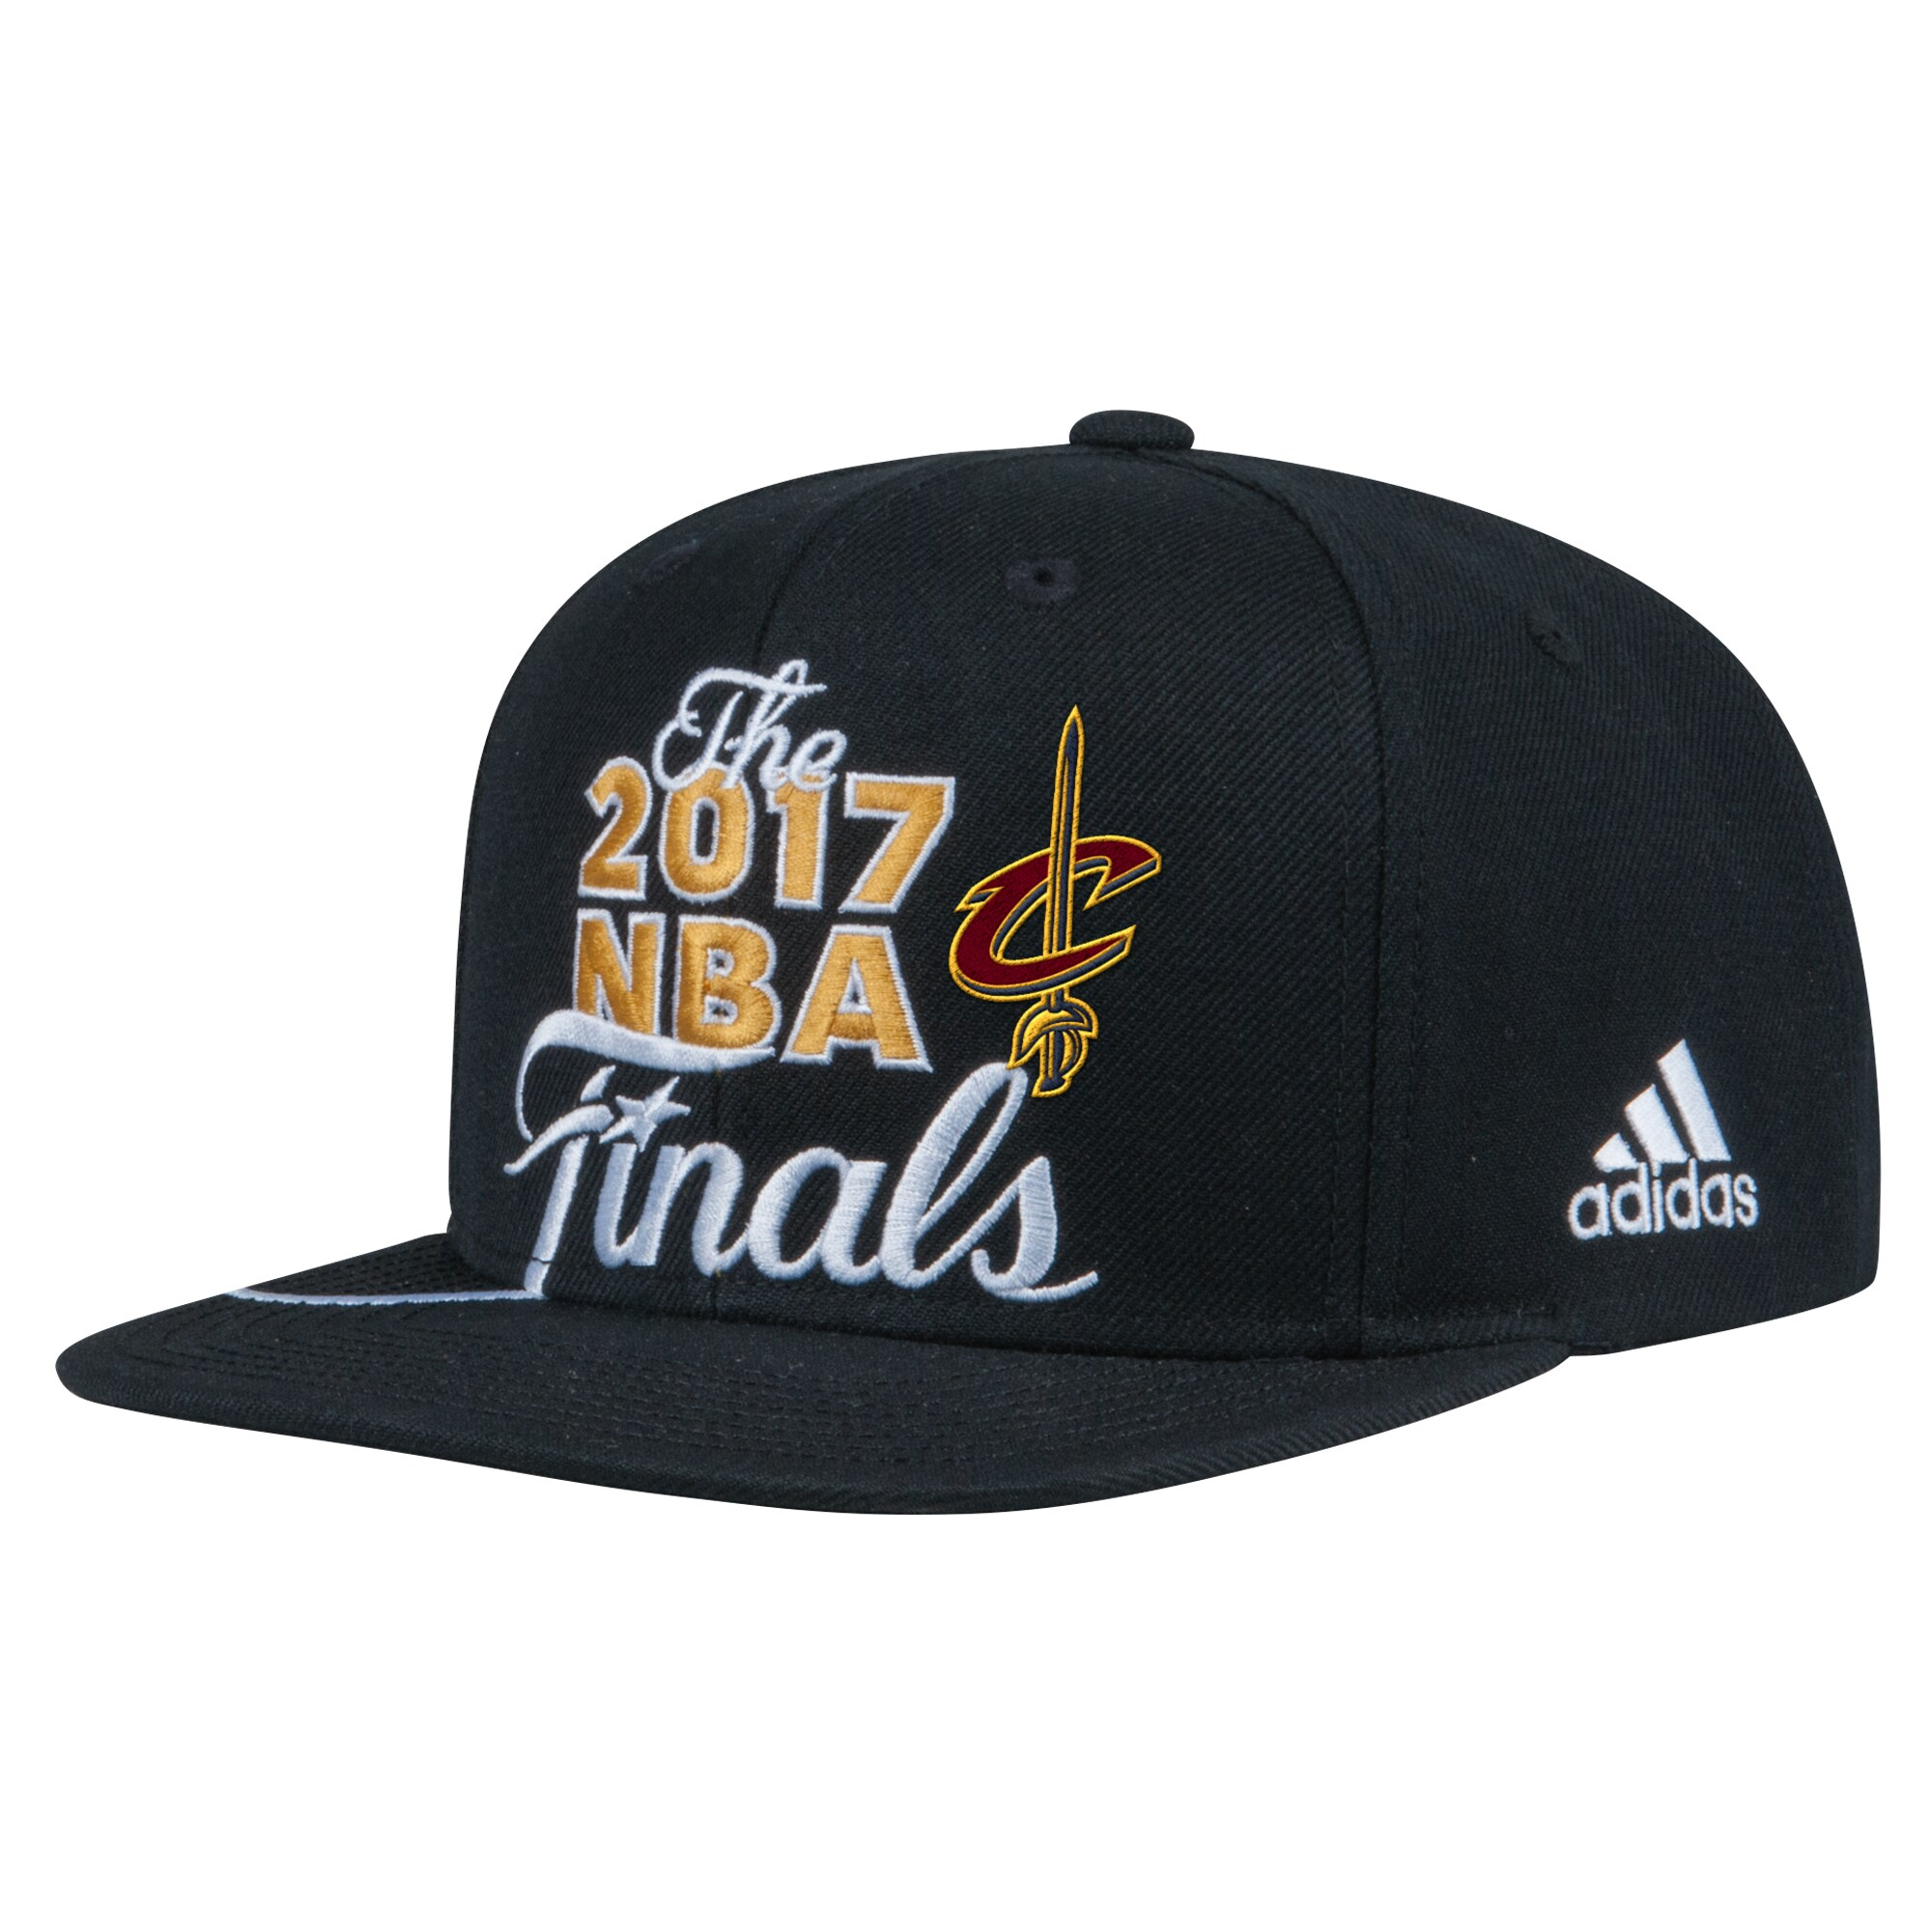 Cleveland Cavaliers adidas Youth 2017 Eastern Conference Champions Locker Room Snapback Adjustable Hat - Black